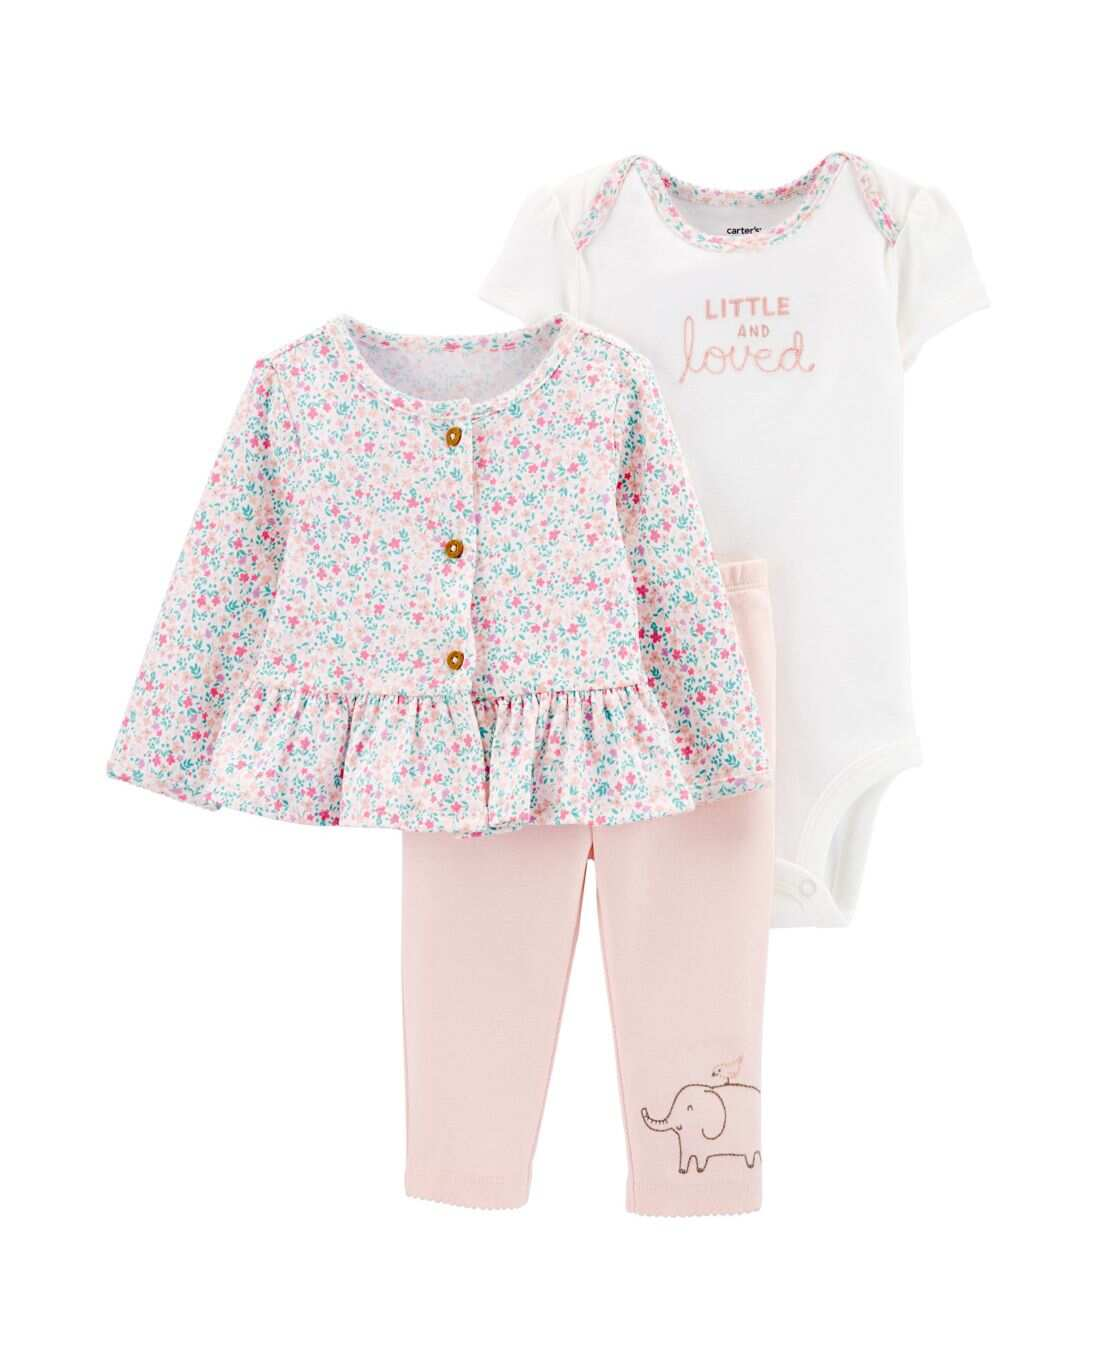 Conjunto 3 Peças Little And Loved Carter's - Rosa